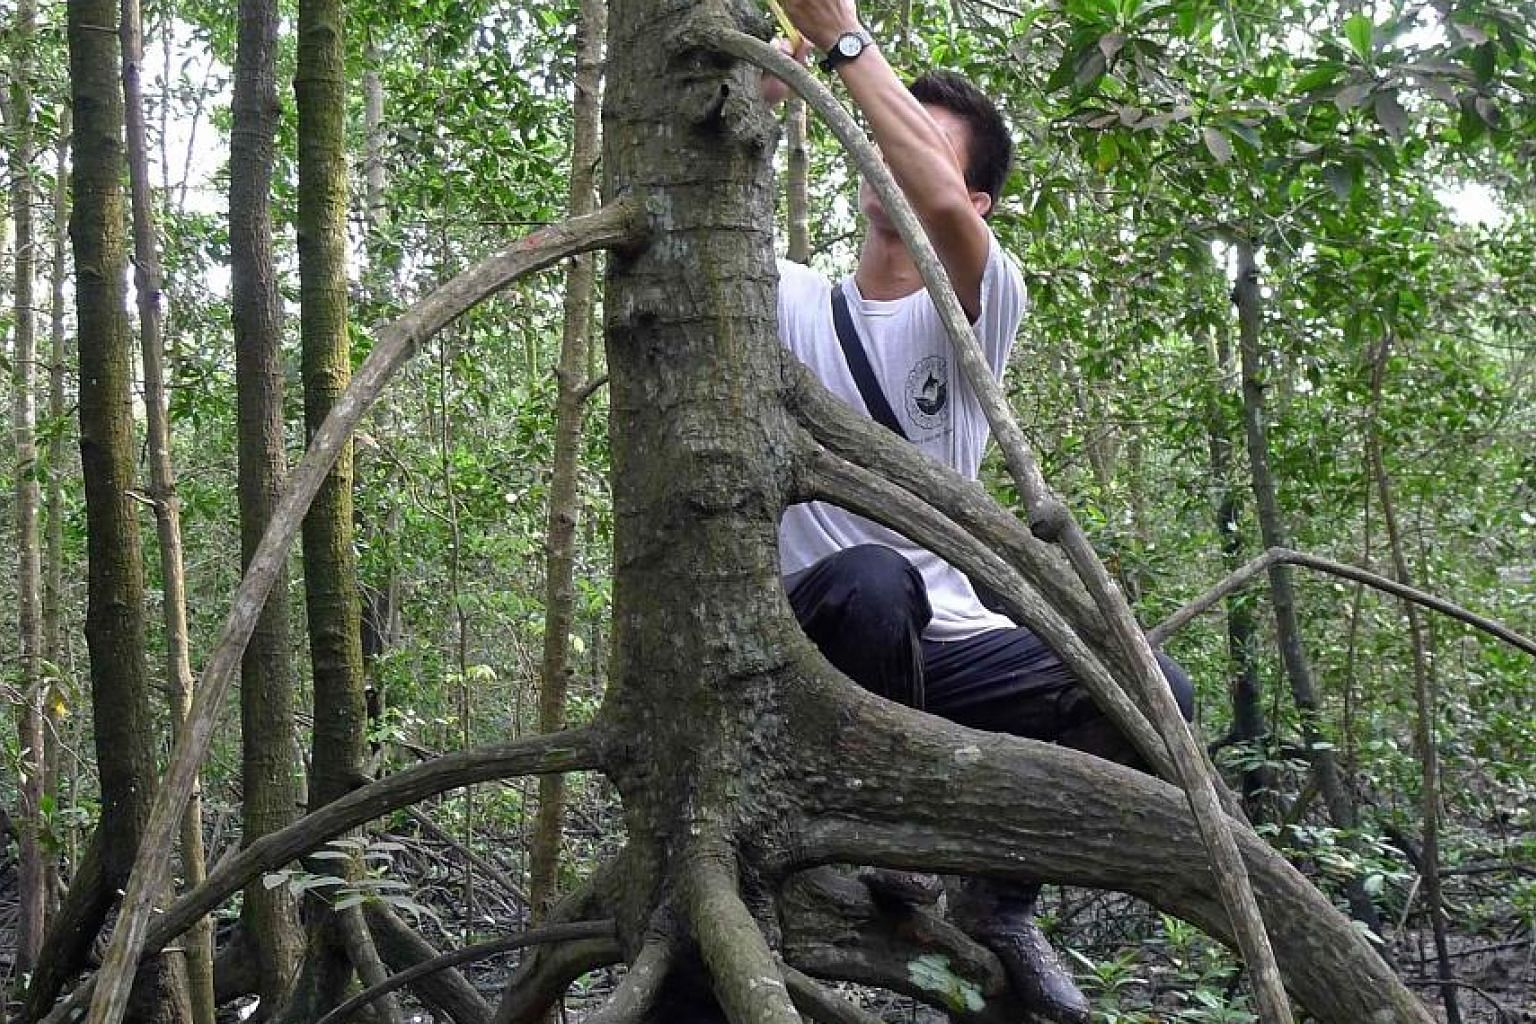 A researcher from the National University of Singapore conducting a carbon stock assessment of mangrove forests here. Singapore's mangroves store the equivalent of 1.6 million tonnes of carbon dioxide, despite covering only a small length of the coas